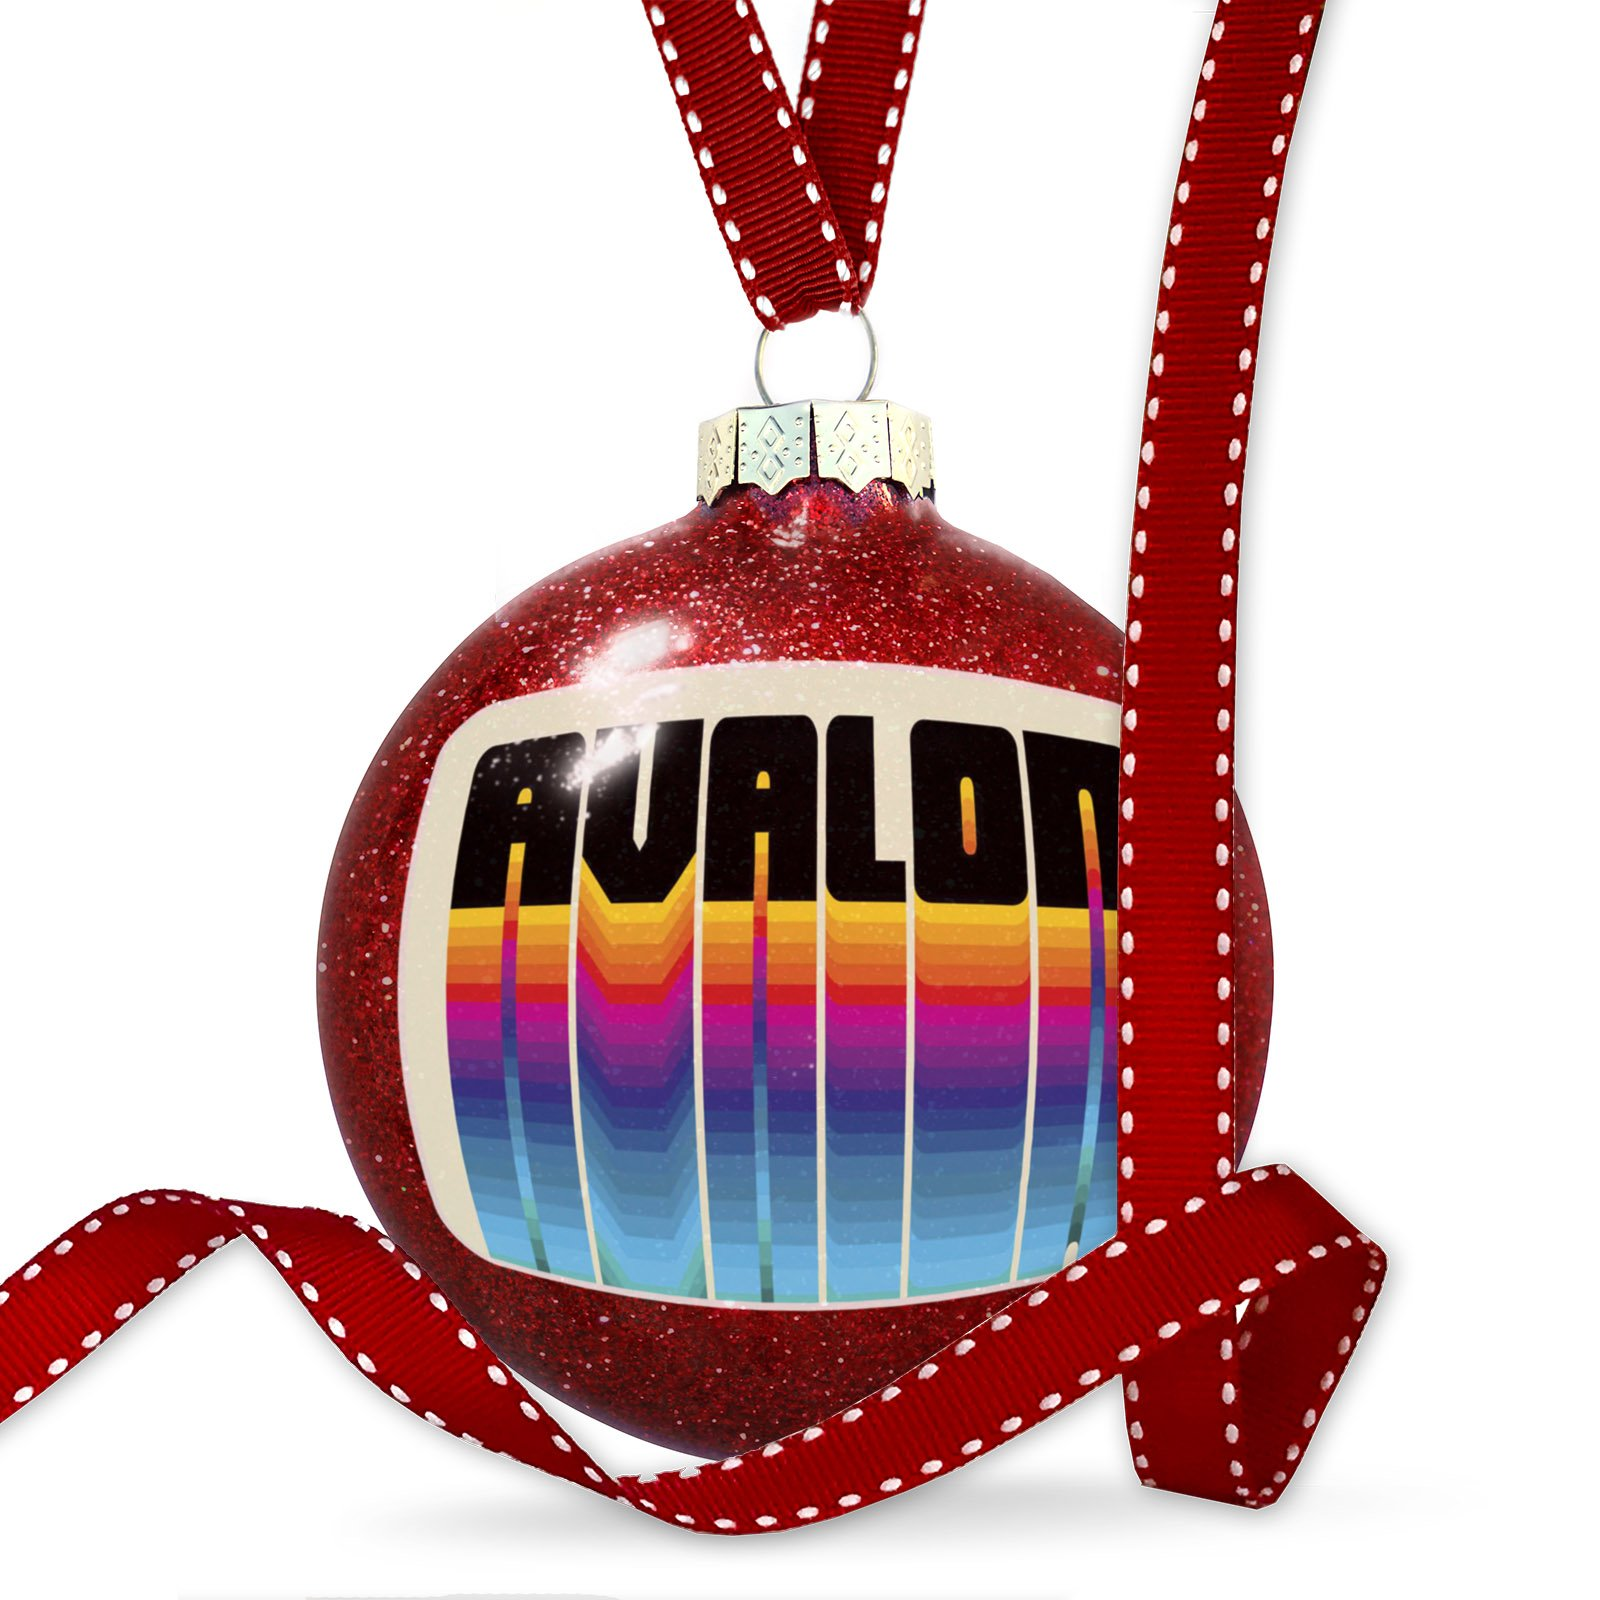 Christmas Decoration Retro Cites States Countries Avalon Ornament by NEONBLOND (Image #1)